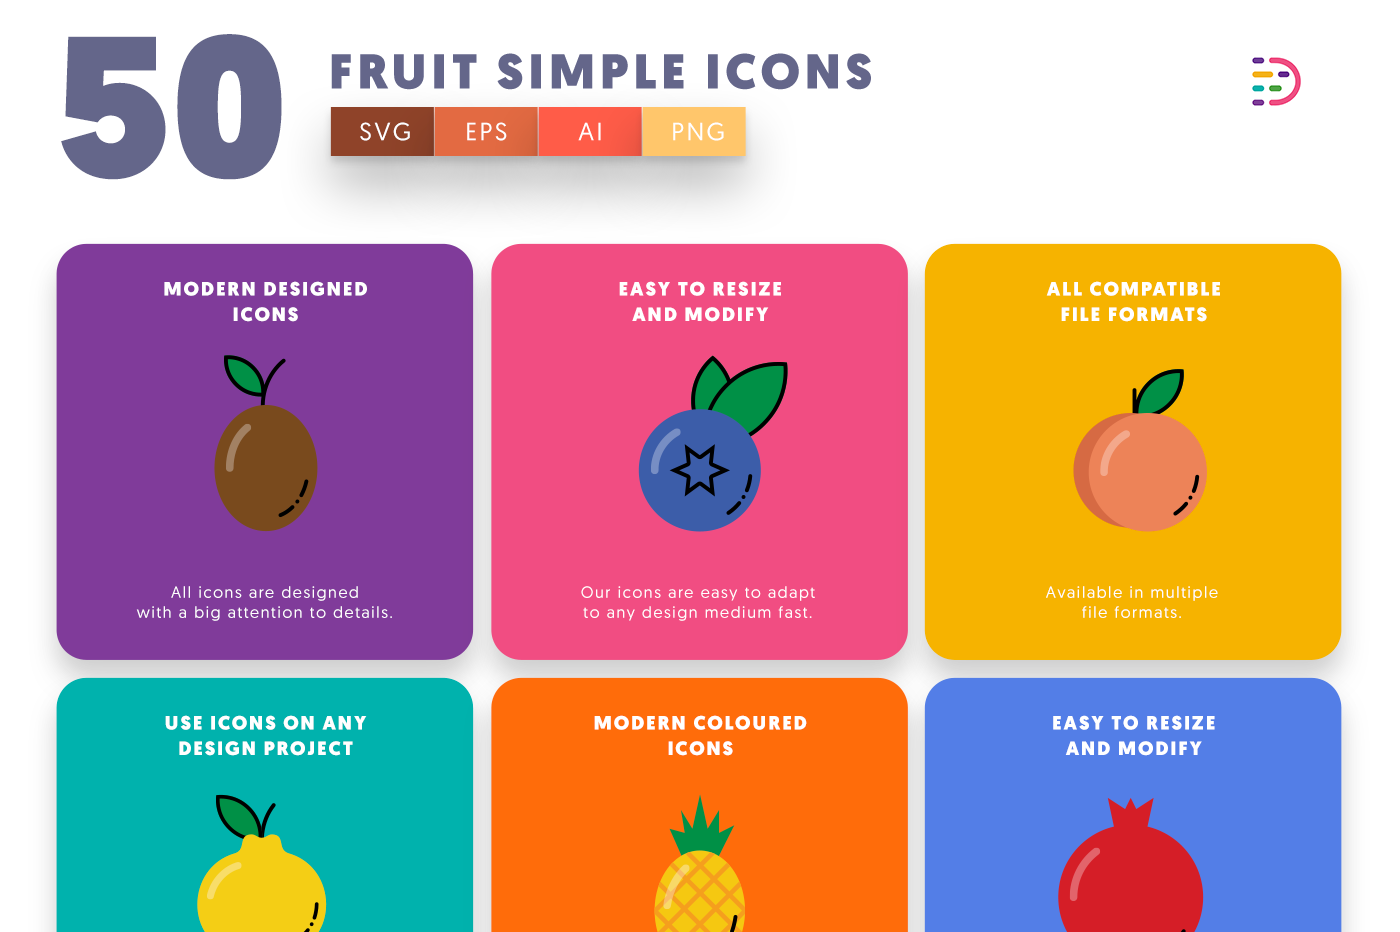 50 Fruit Simple Icons with colored backgrounds